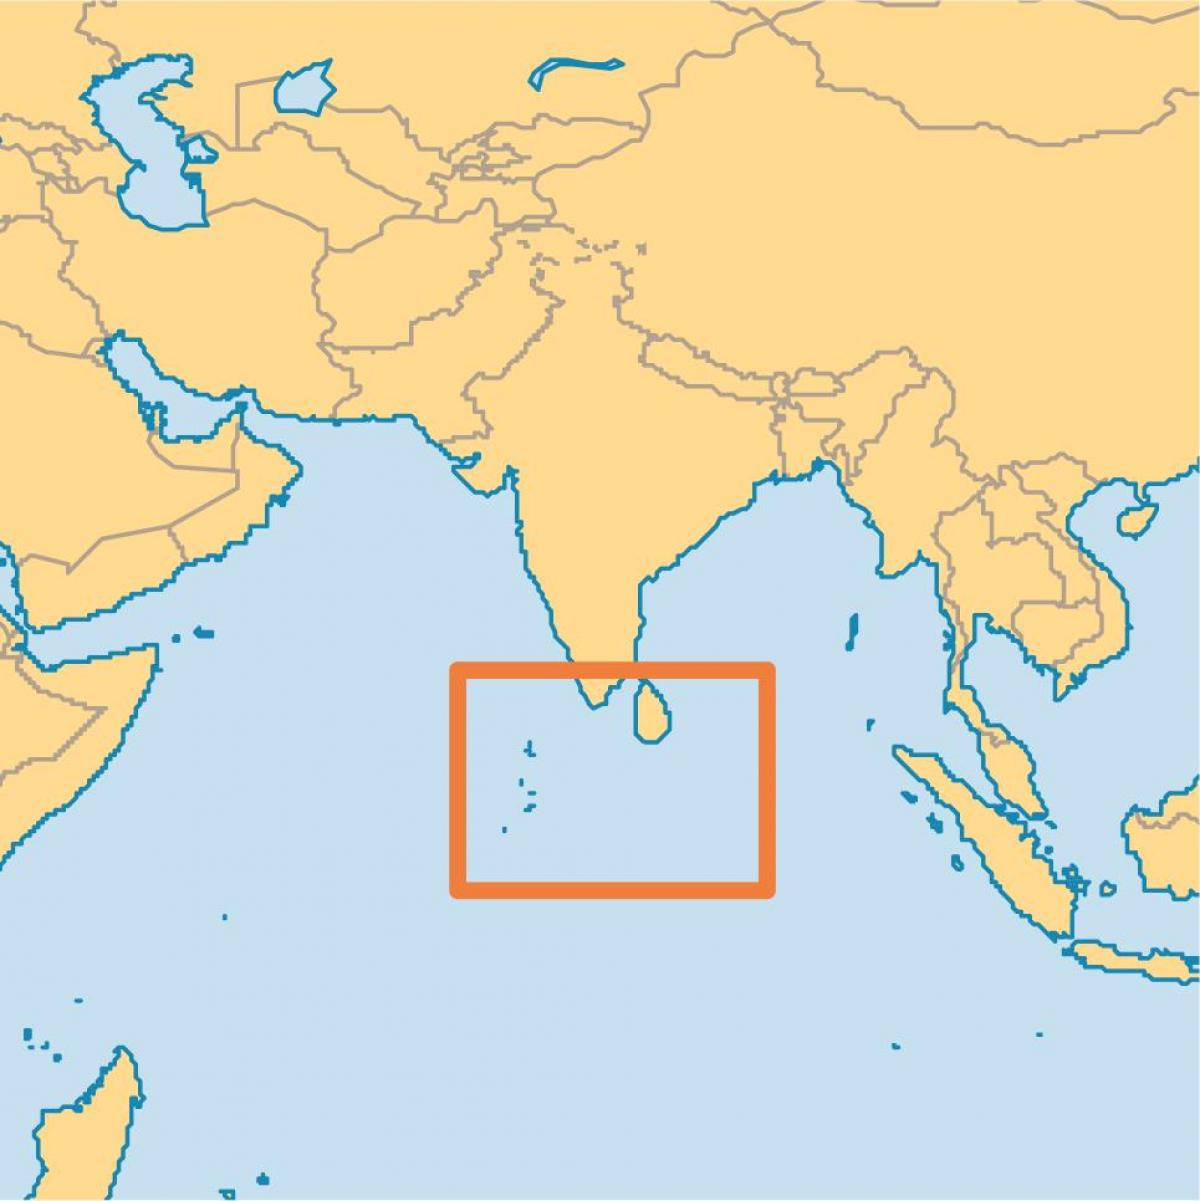 maldives island location on world map